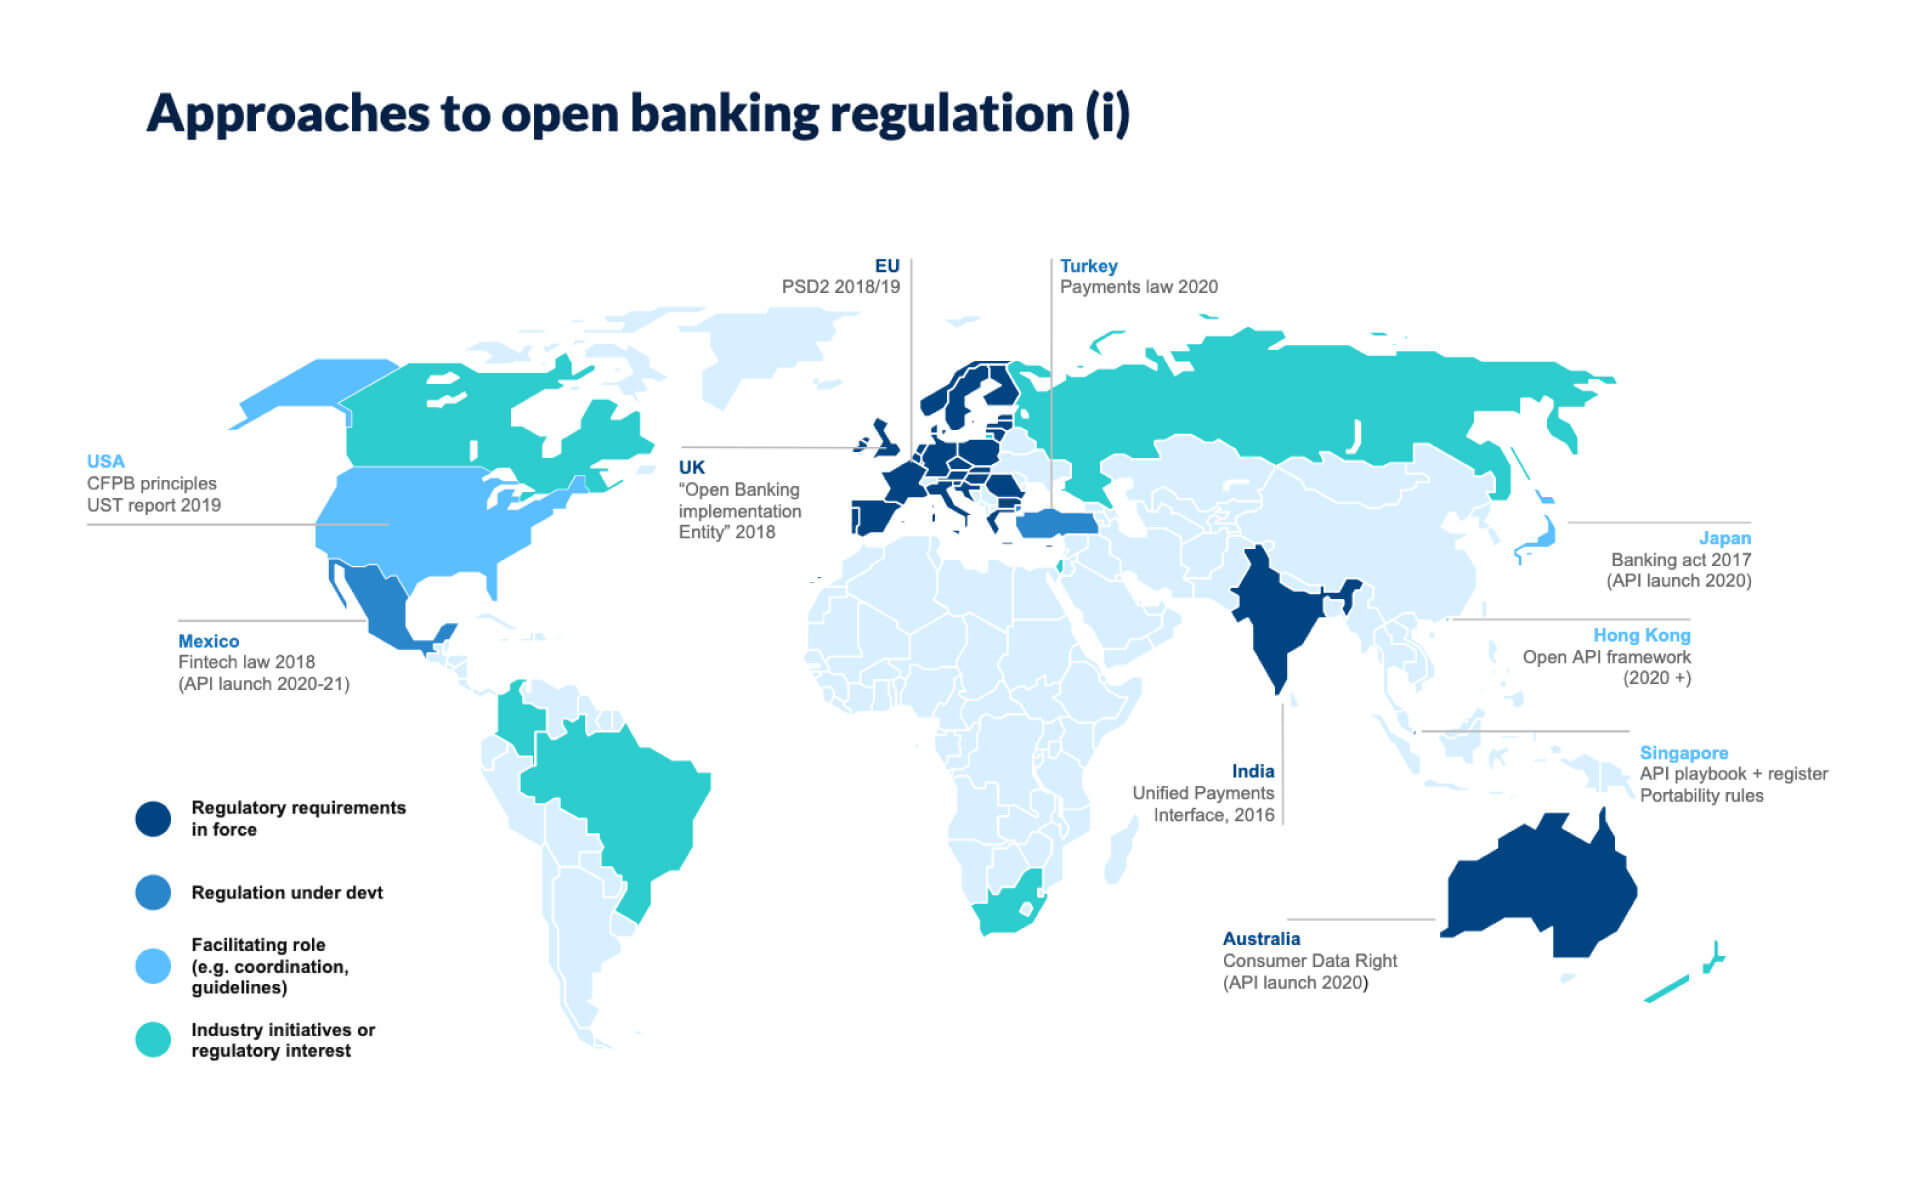 Approaches to open-banking regulation worldwide